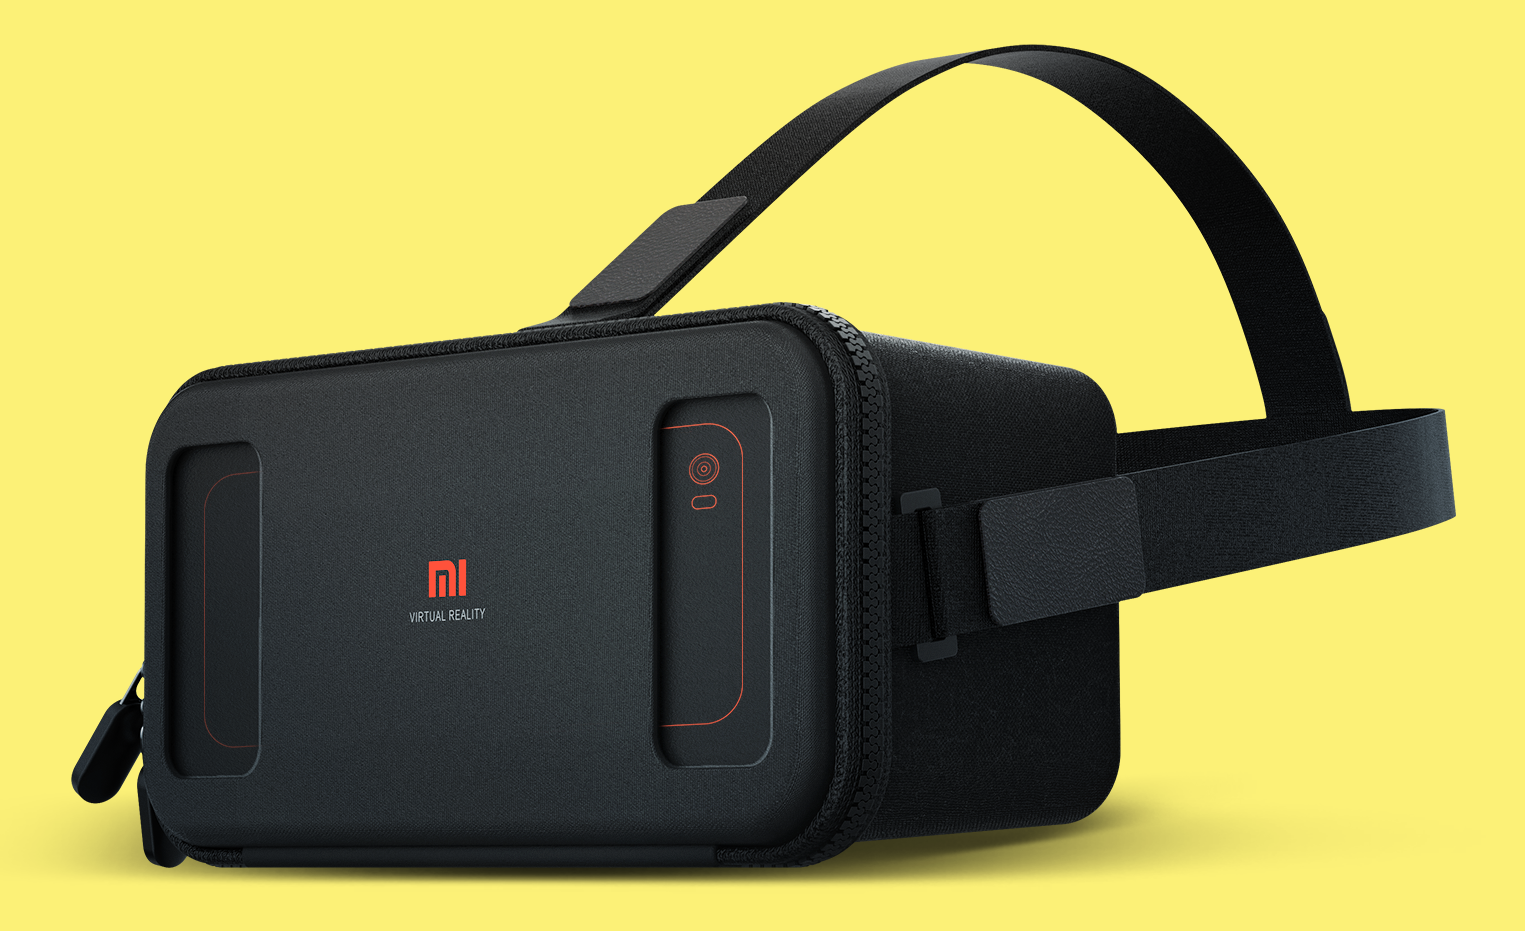 The Mi VR Play has a soft cover that zips closed to hold a phone in place.